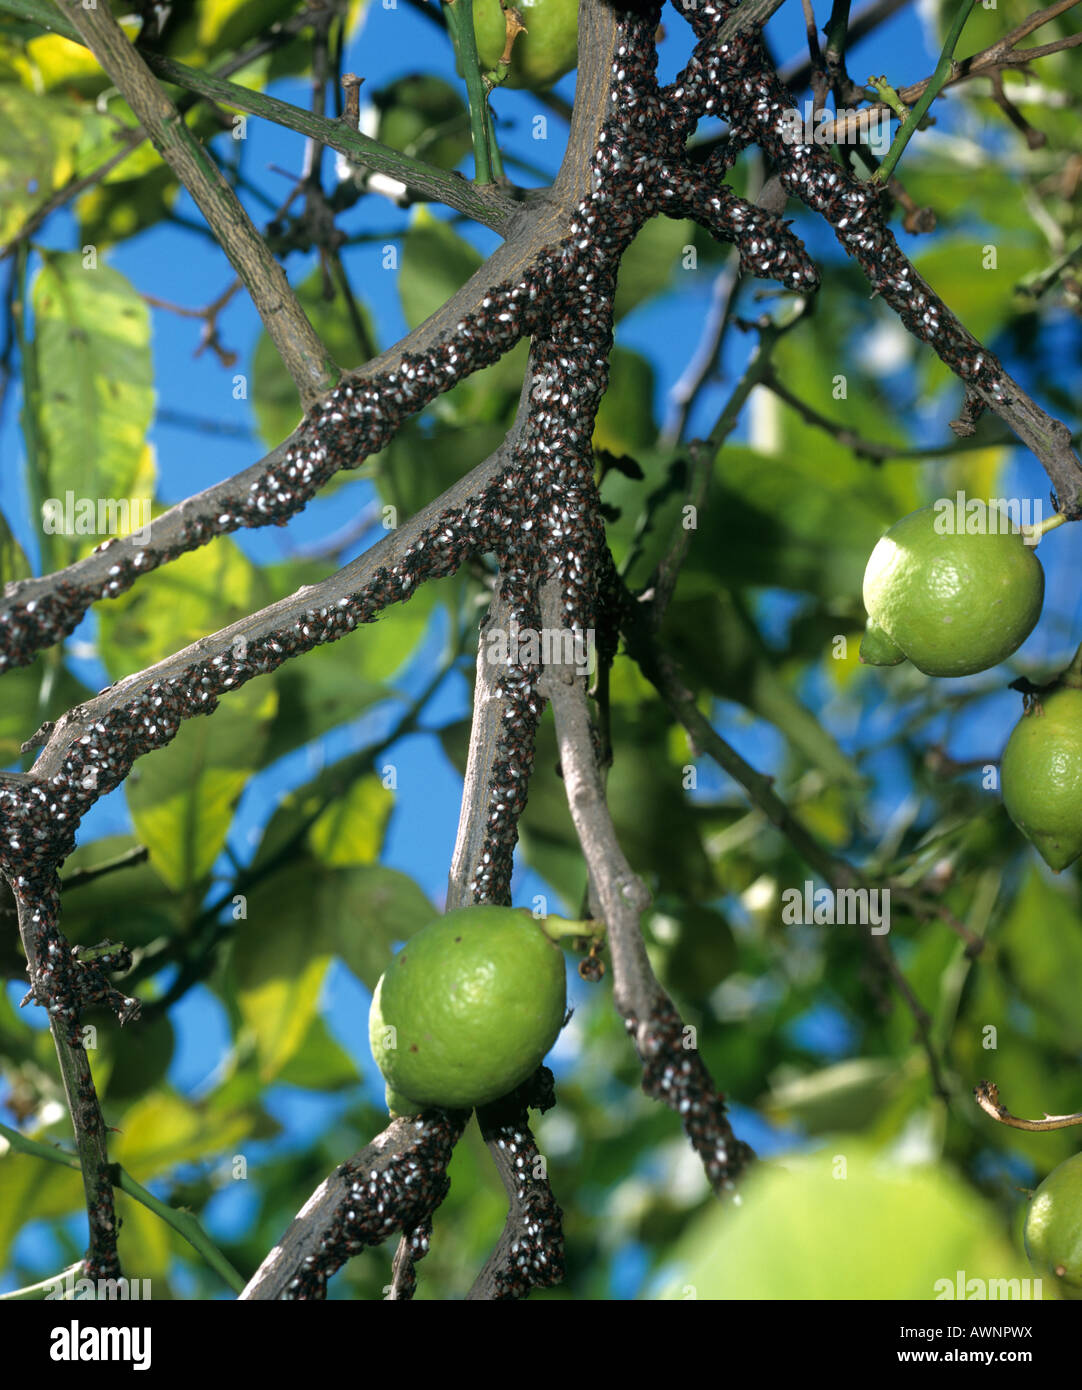 Masses of Lygaeid bugs Lygaeidae hibernating or congregating in the branches of a lemon tree - Stock Image